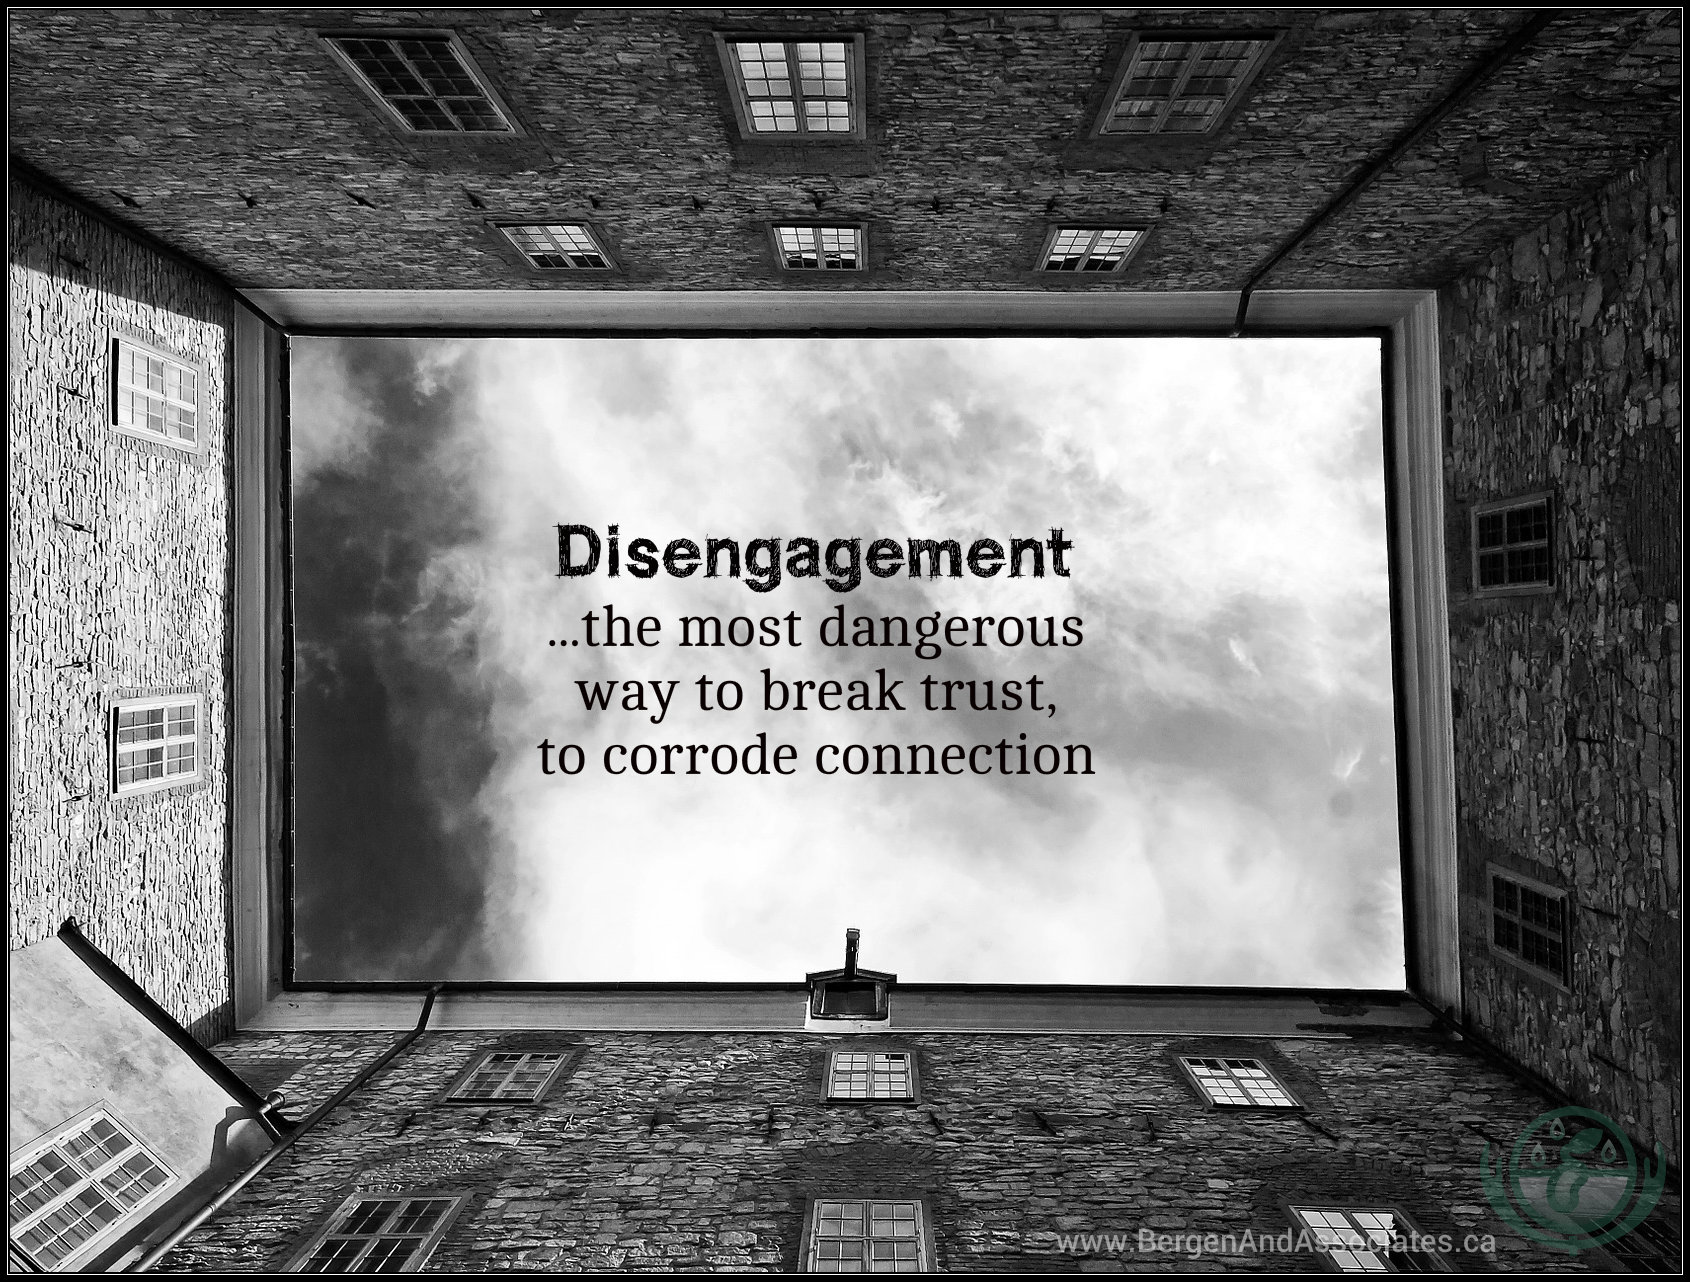 Disengagement is the most dangerous way to corrode connection.